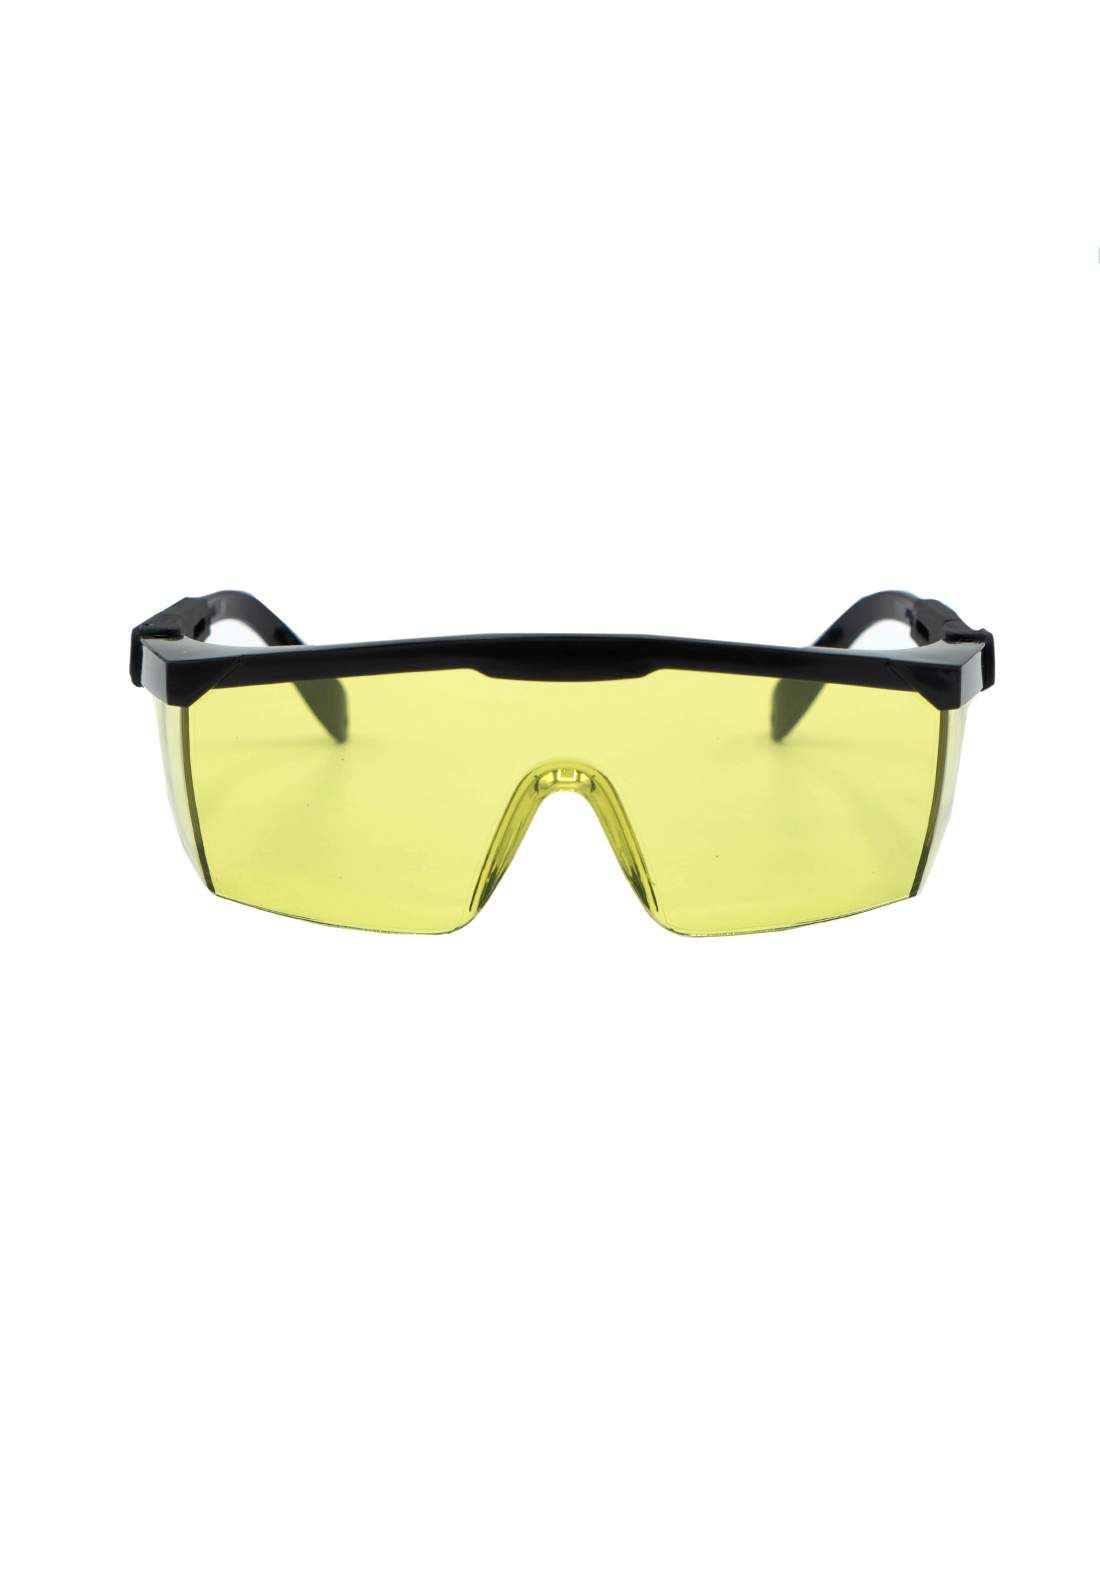 Subul Alhurra Safety Glasses And Eye Protection Complete Vision نظارات أمان متعددة الوظائف